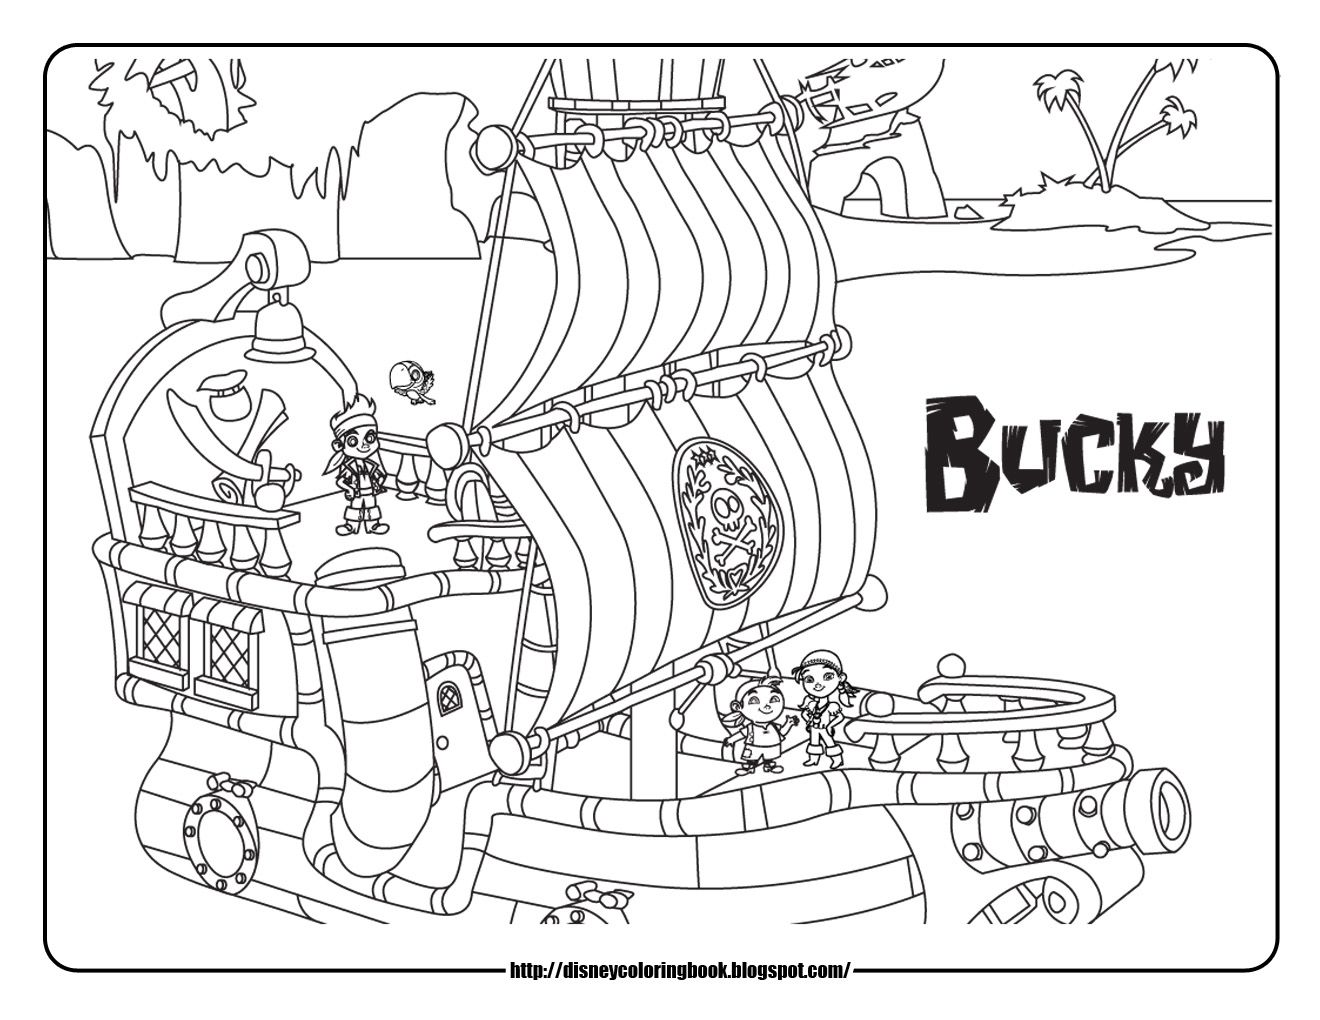 Tsum Tsum Coloring Pages Bubbles: Jake And Neverland Pirates Coloring Pages